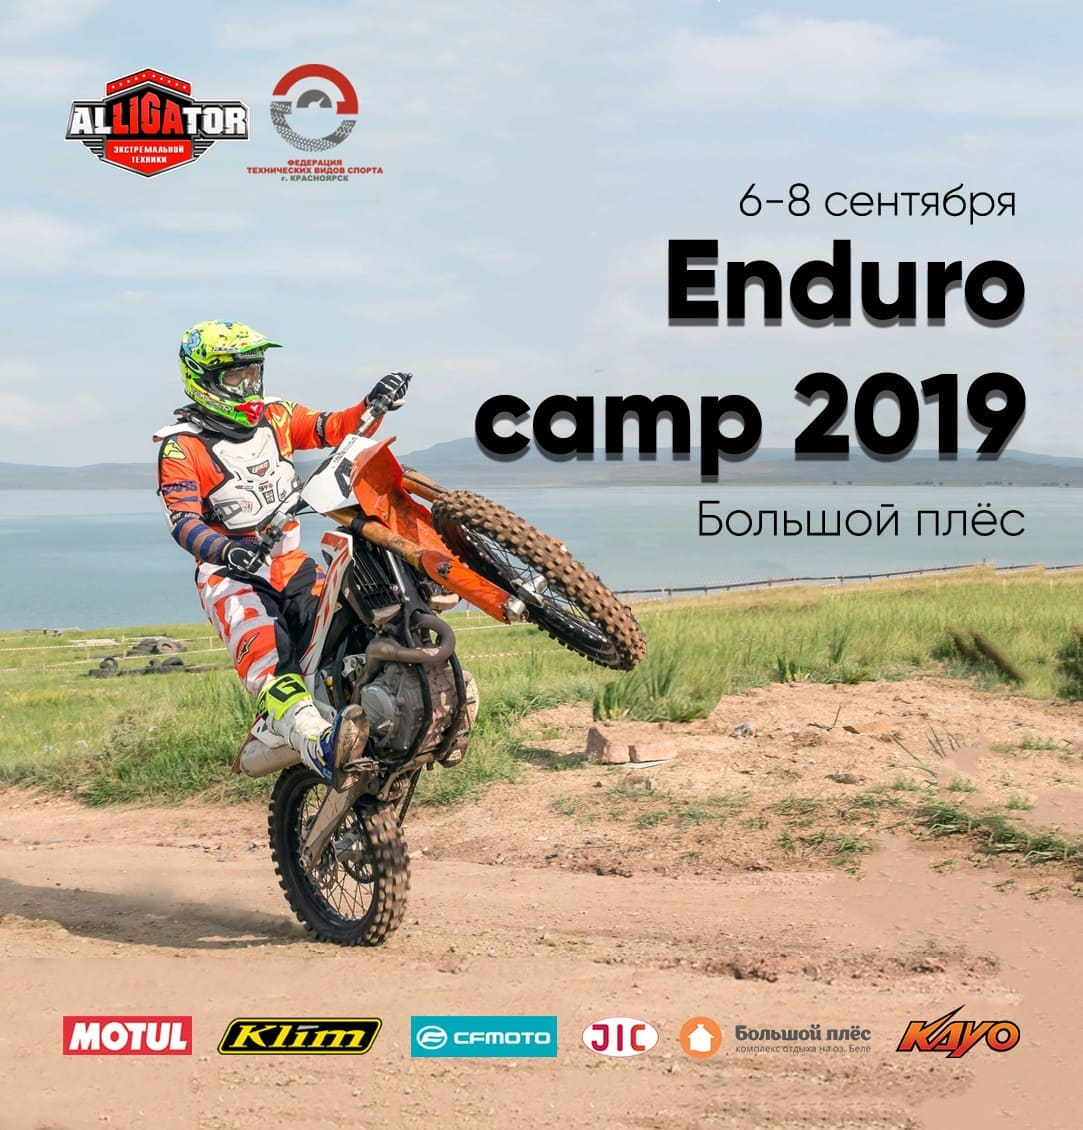 Enduro camp 2019